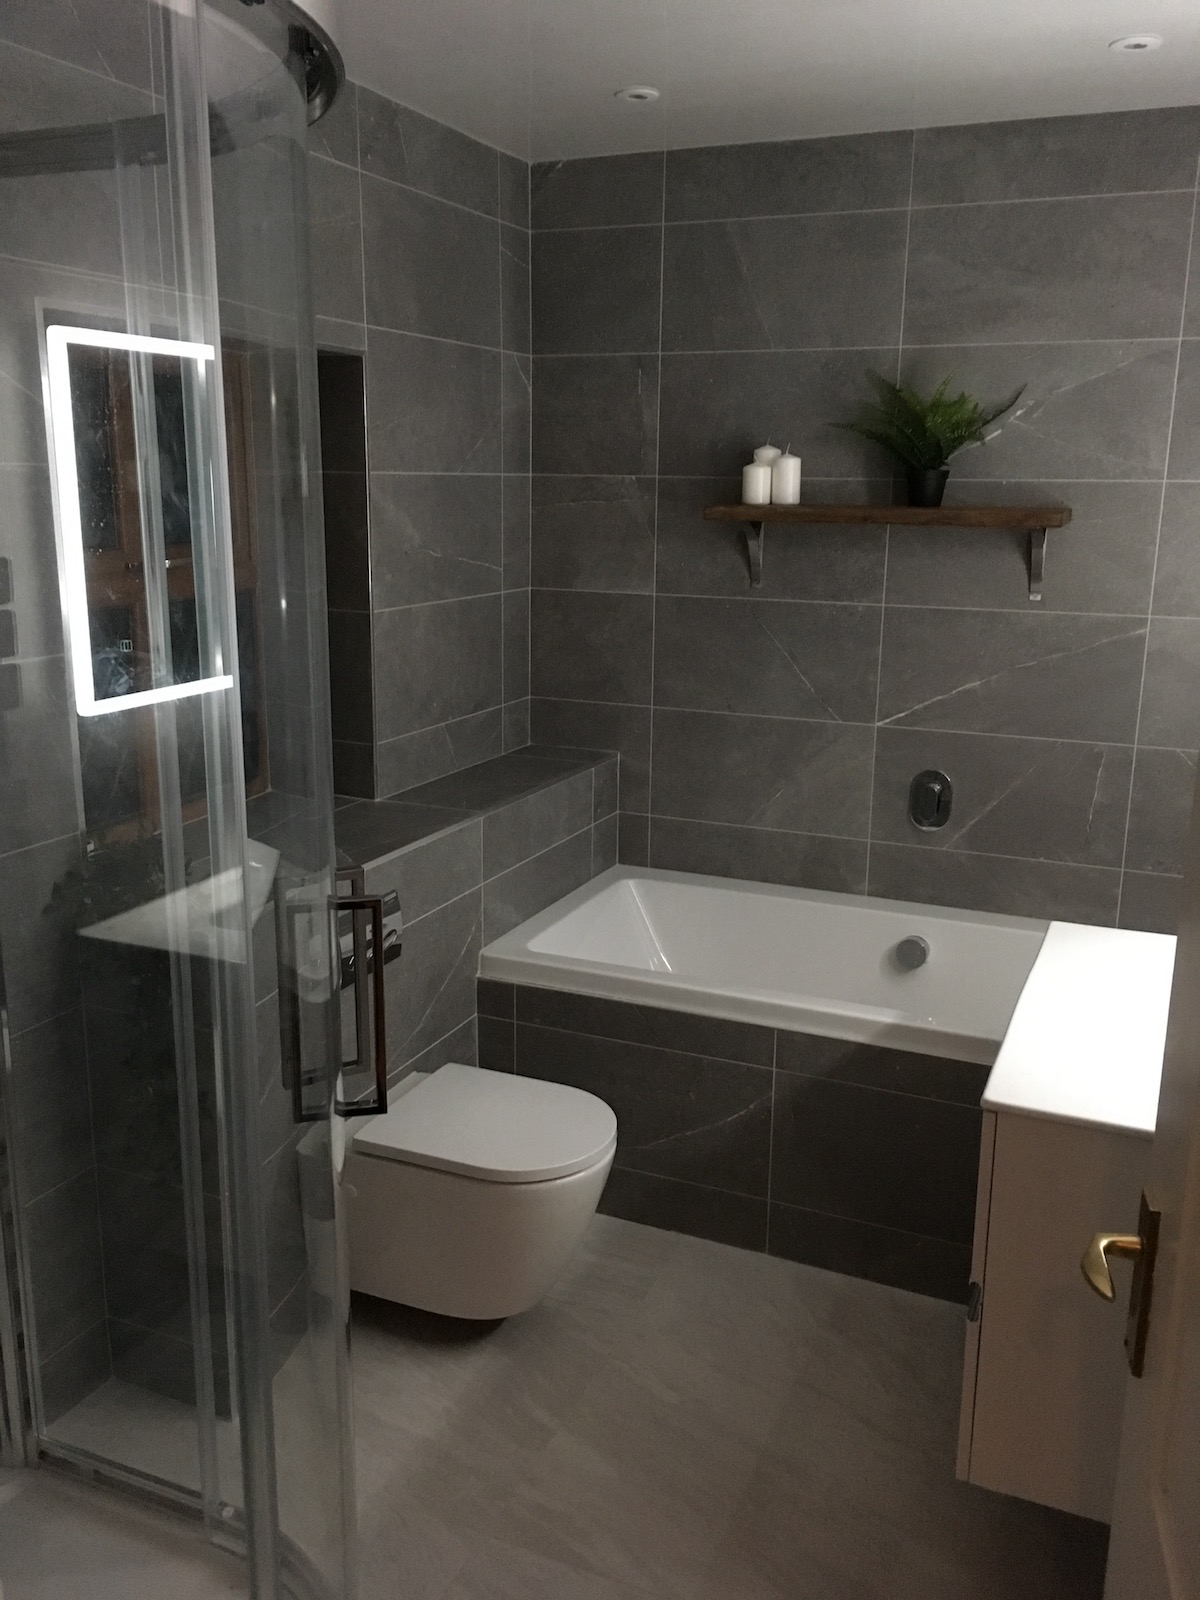 Bathtub and Separate Shower